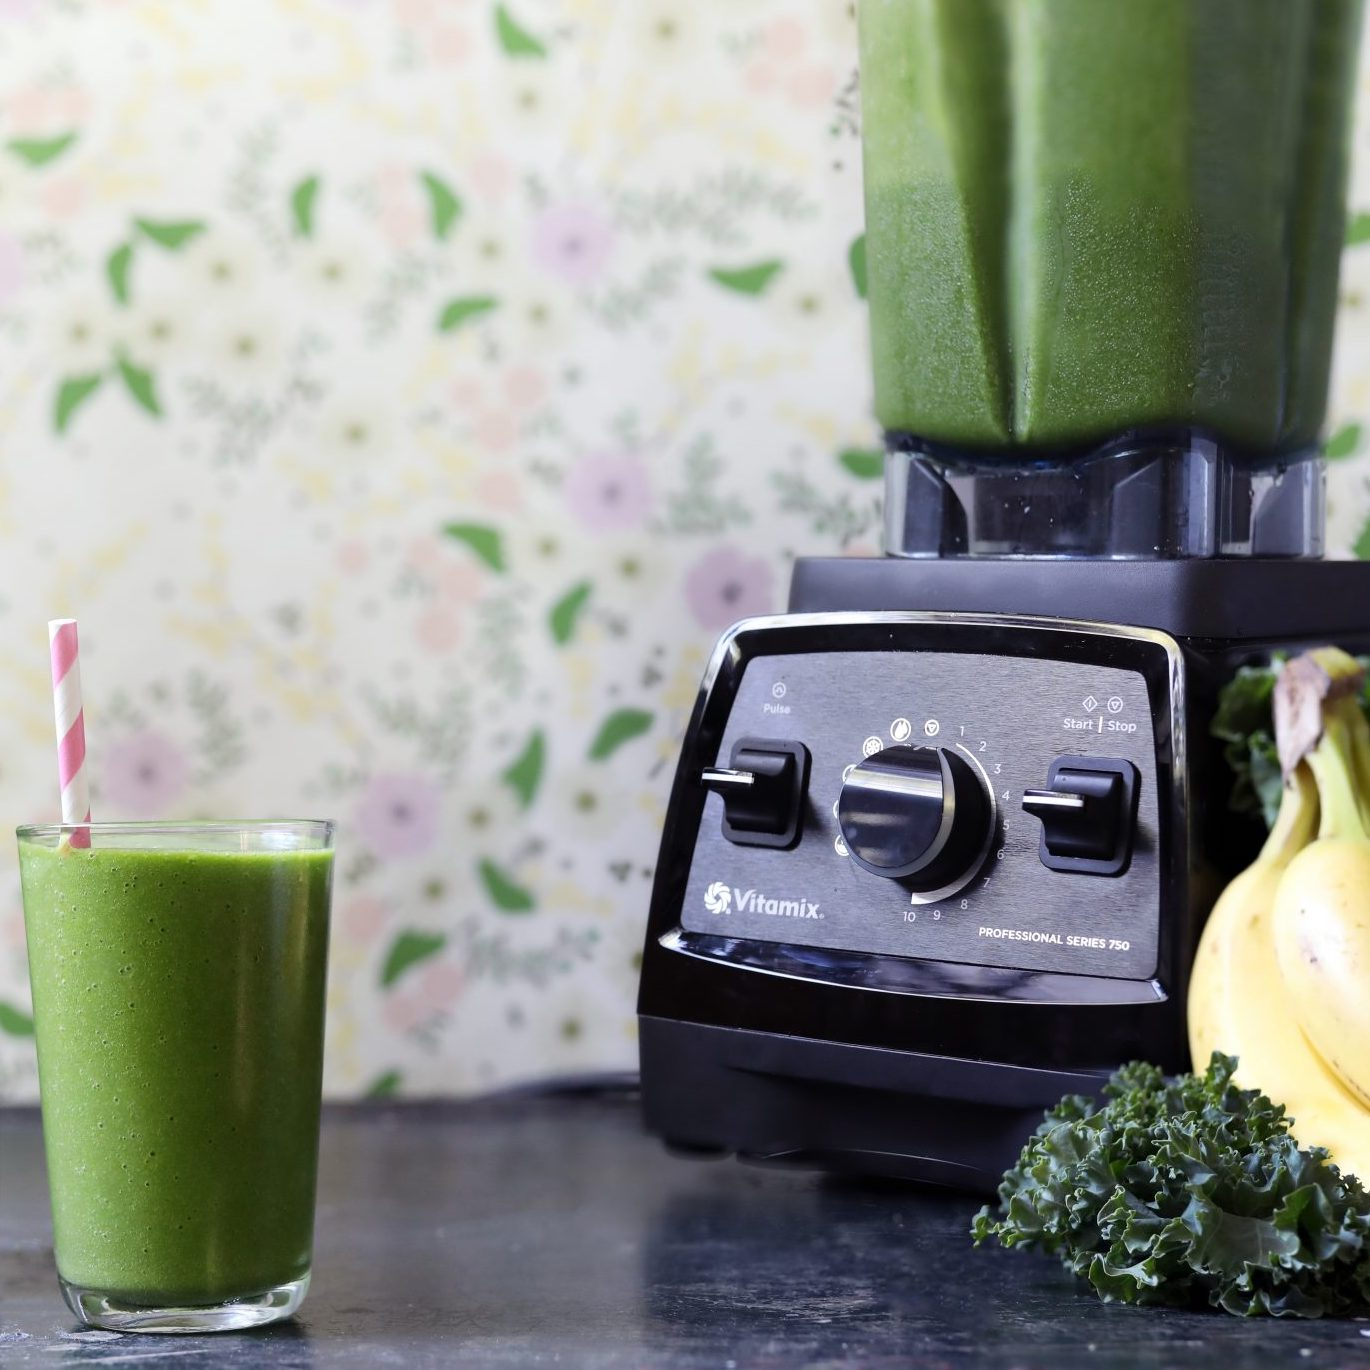 Vitamix blender with green smoothie inside pitcher, plus two cups of green smoothie, banana, kale, and pineapple